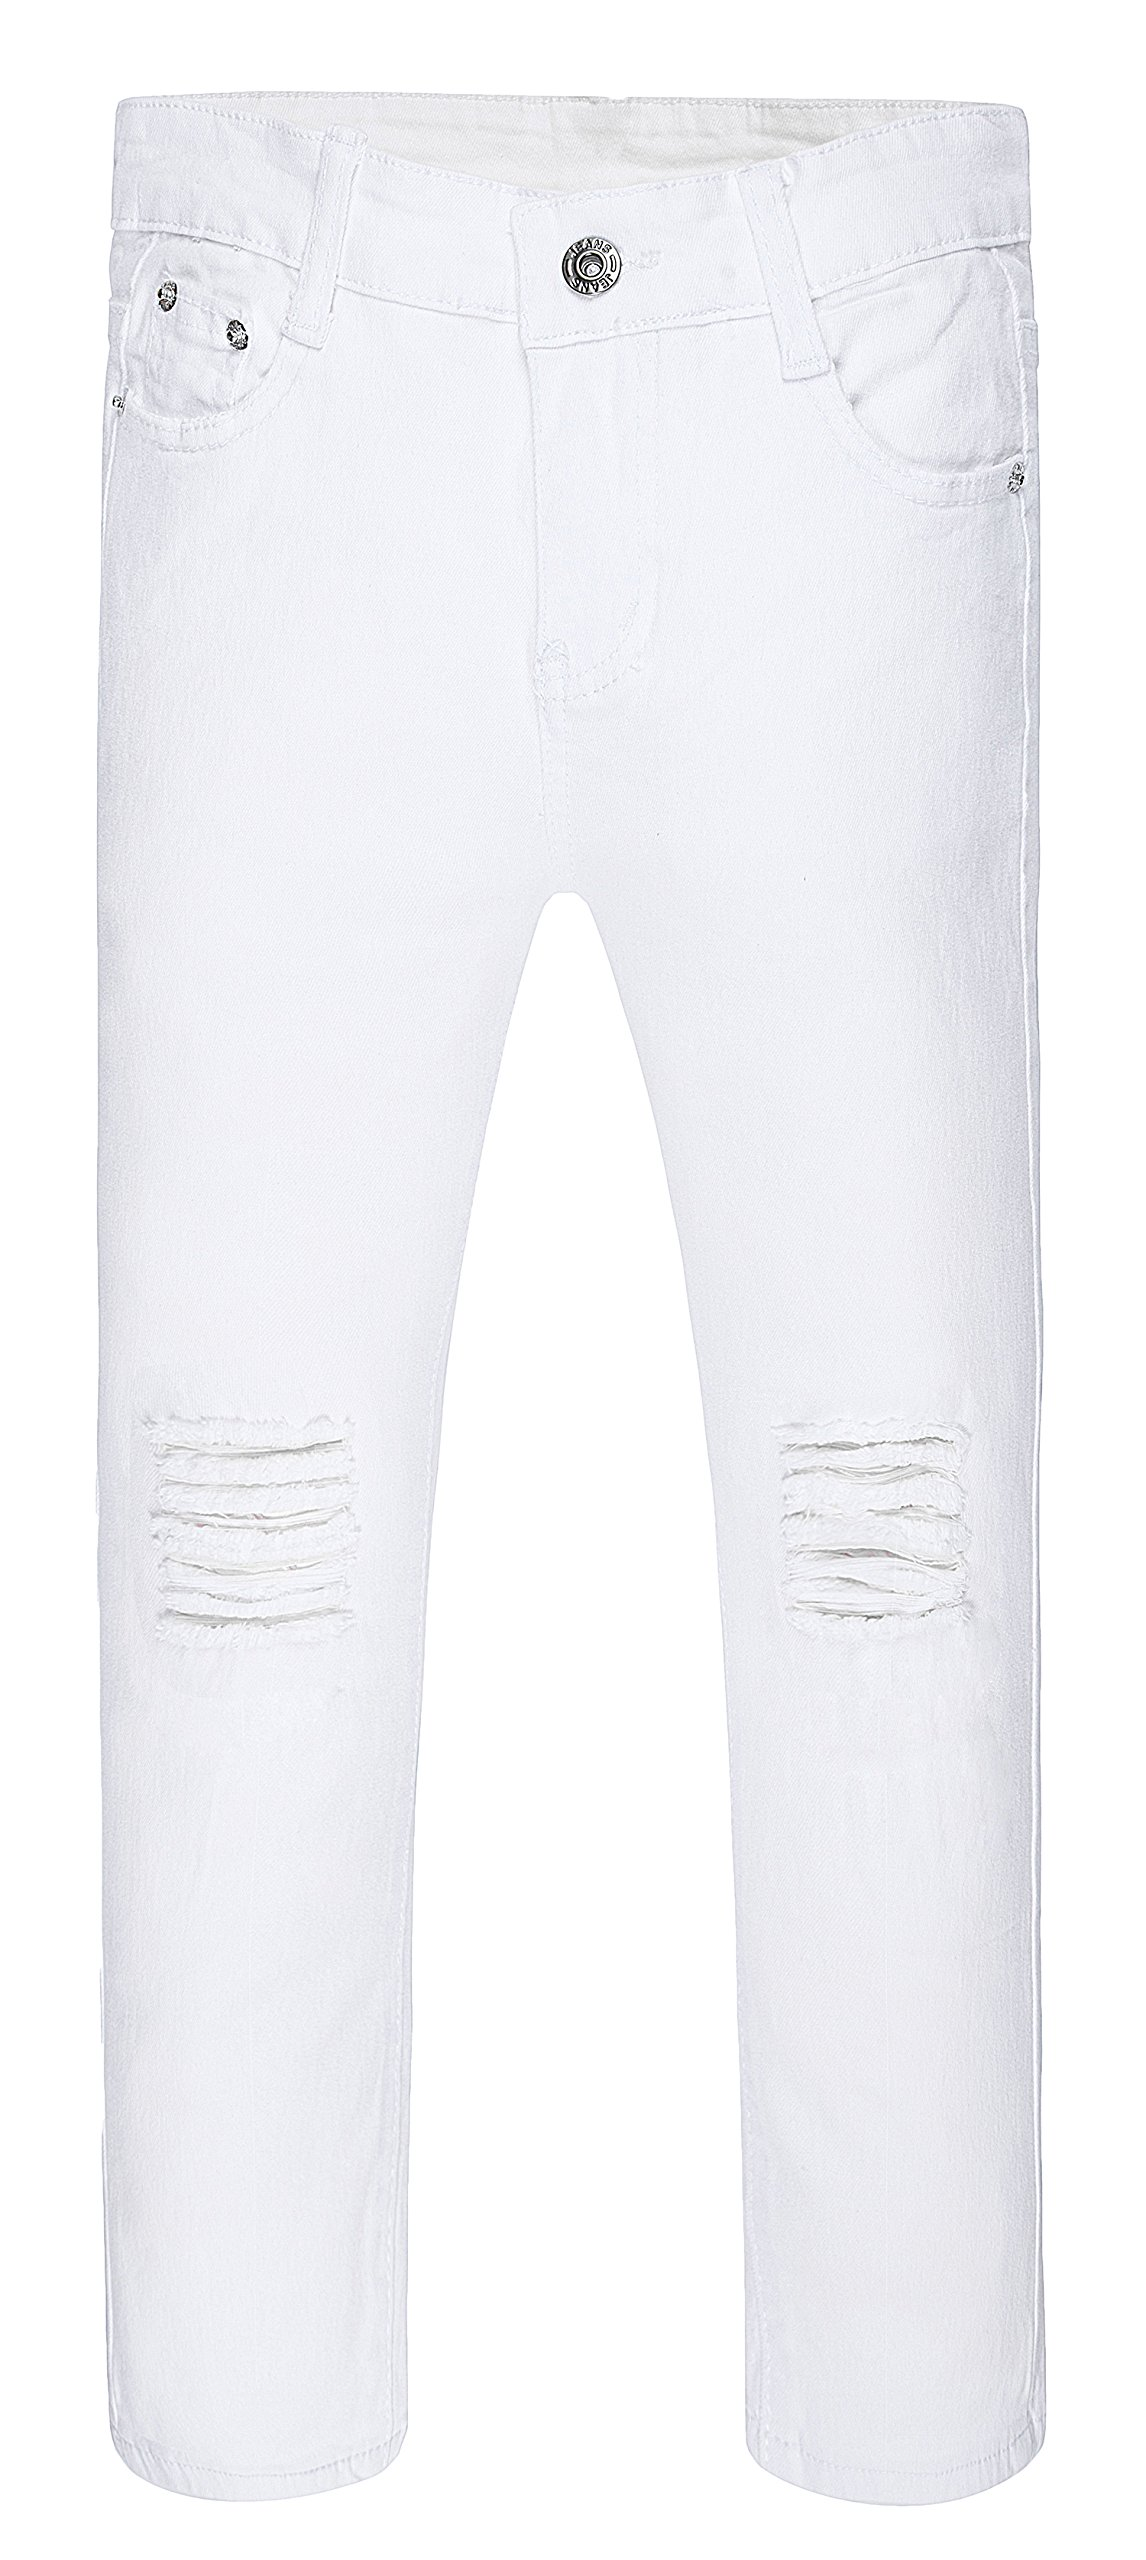 Boy's Ripped Skinny Jeans Destroyed Stretch Slim Distressed Pants White 14